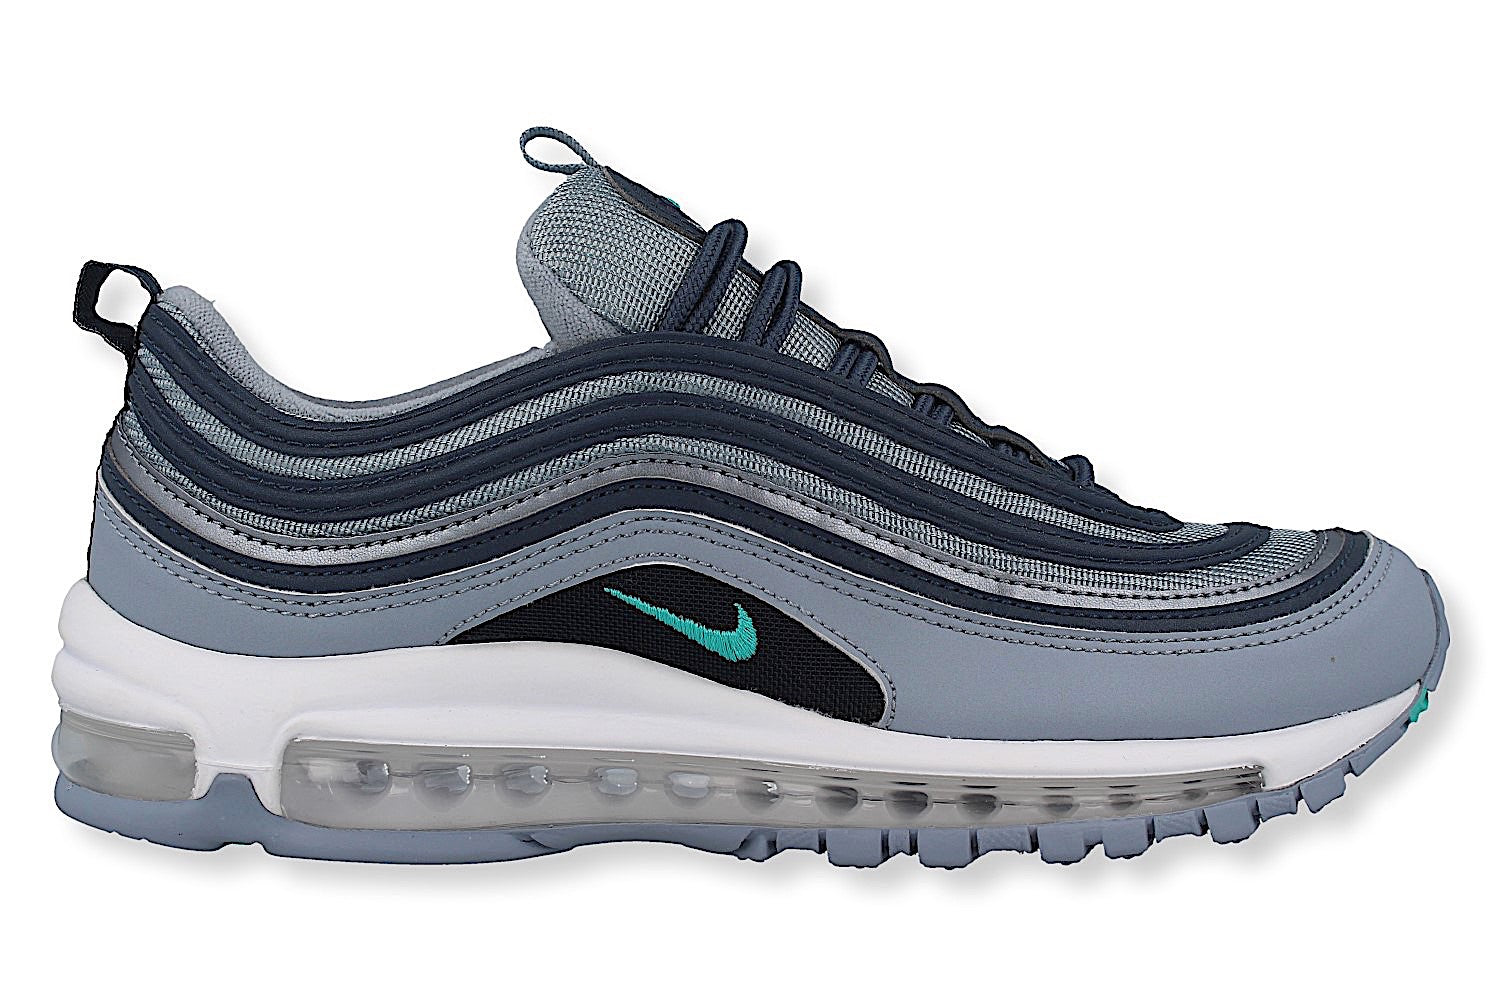 wholesale dealer 3ea1d fc4ad Nike Air Max 97 – Schrittmacher Sneakerhandlung